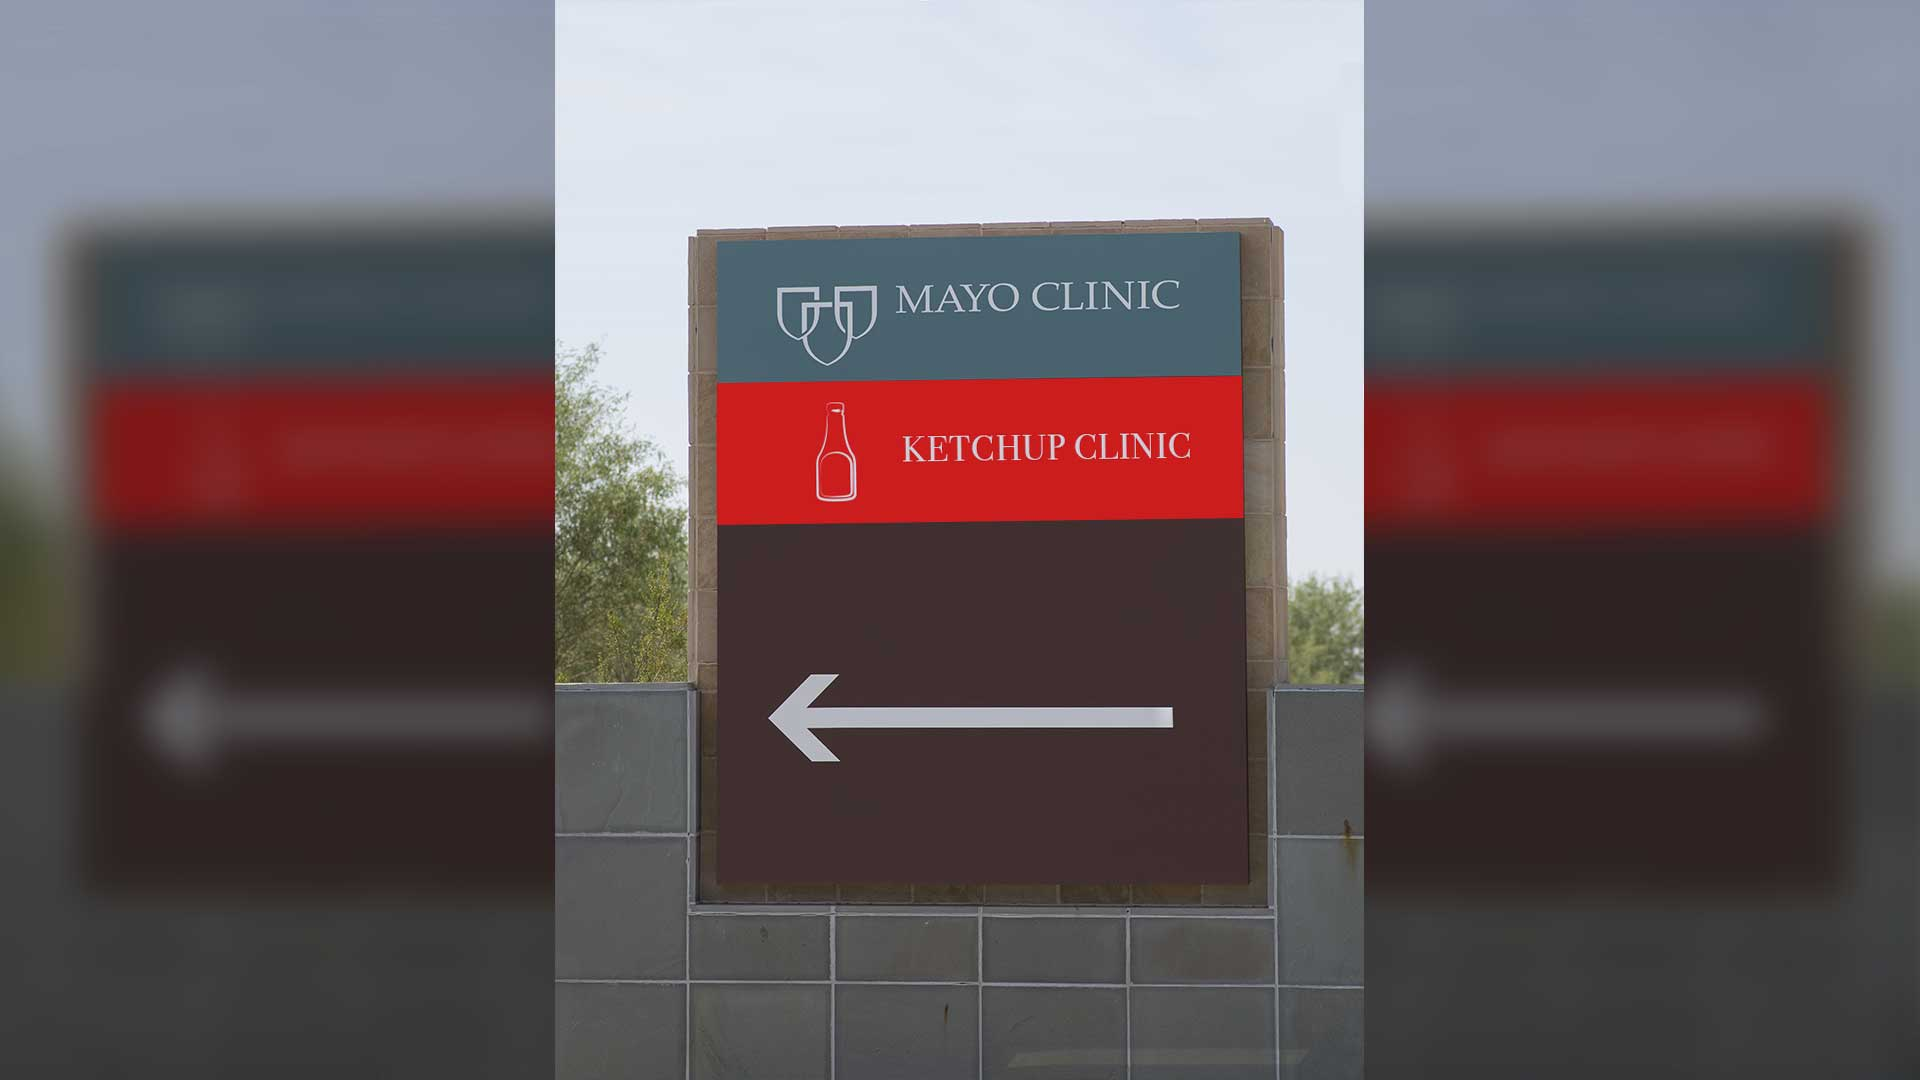 Mayo-Clinic-Unfazed-by-Opening-of-Ketchup-Clinic-Next-Door.jpg